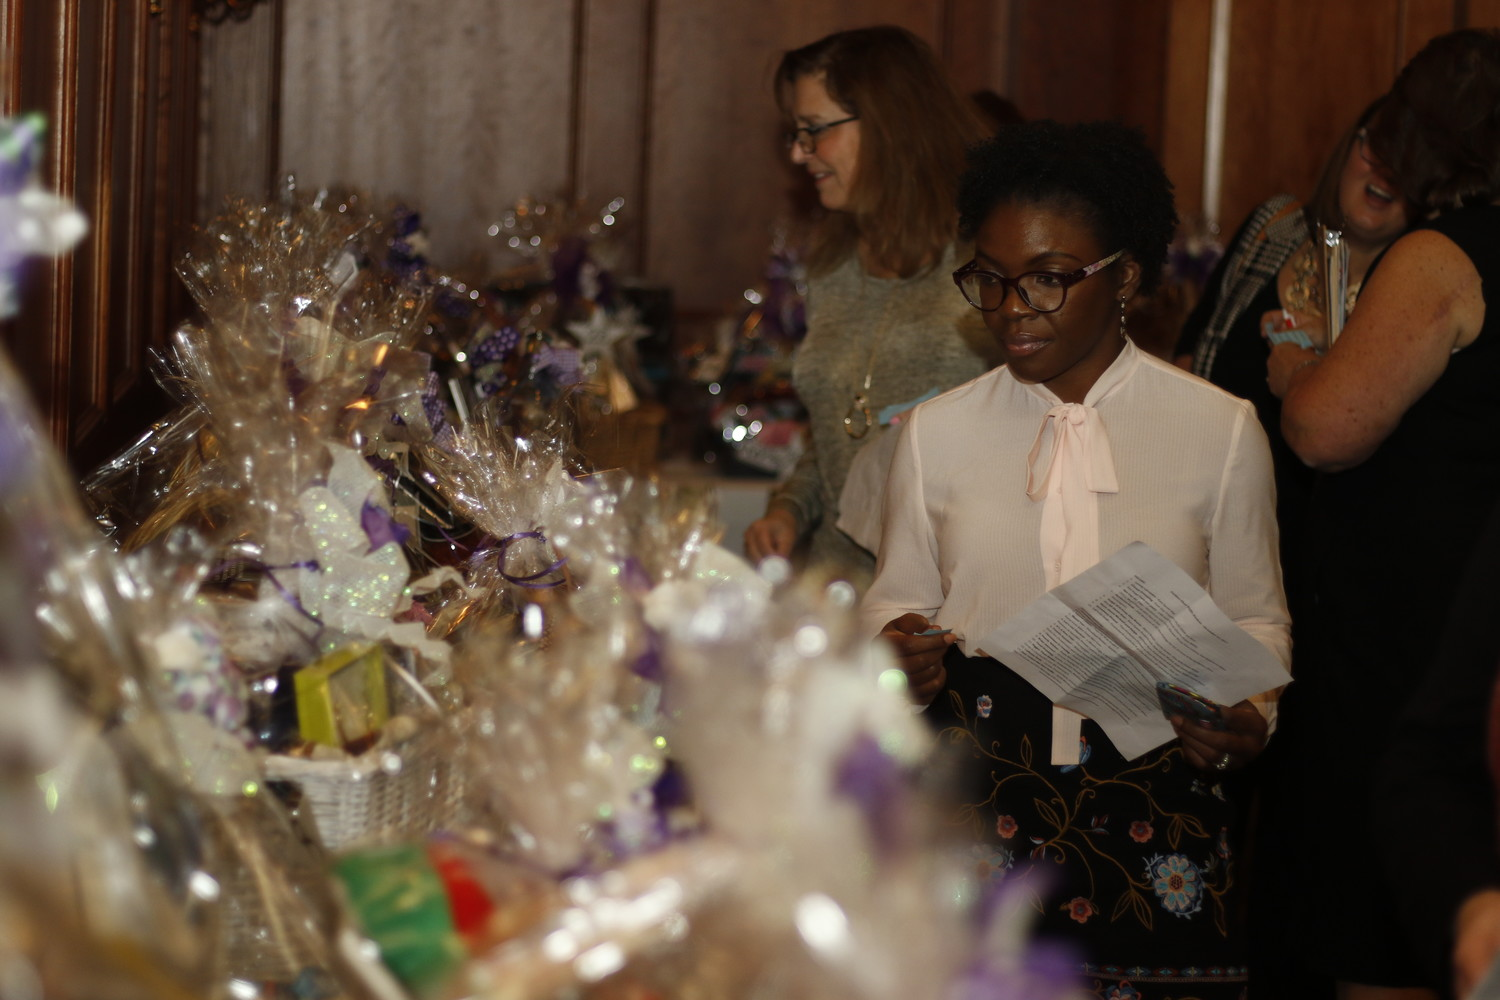 Taneisha Clark, a supporter of the charity, entered a raffle at the fundraiser.